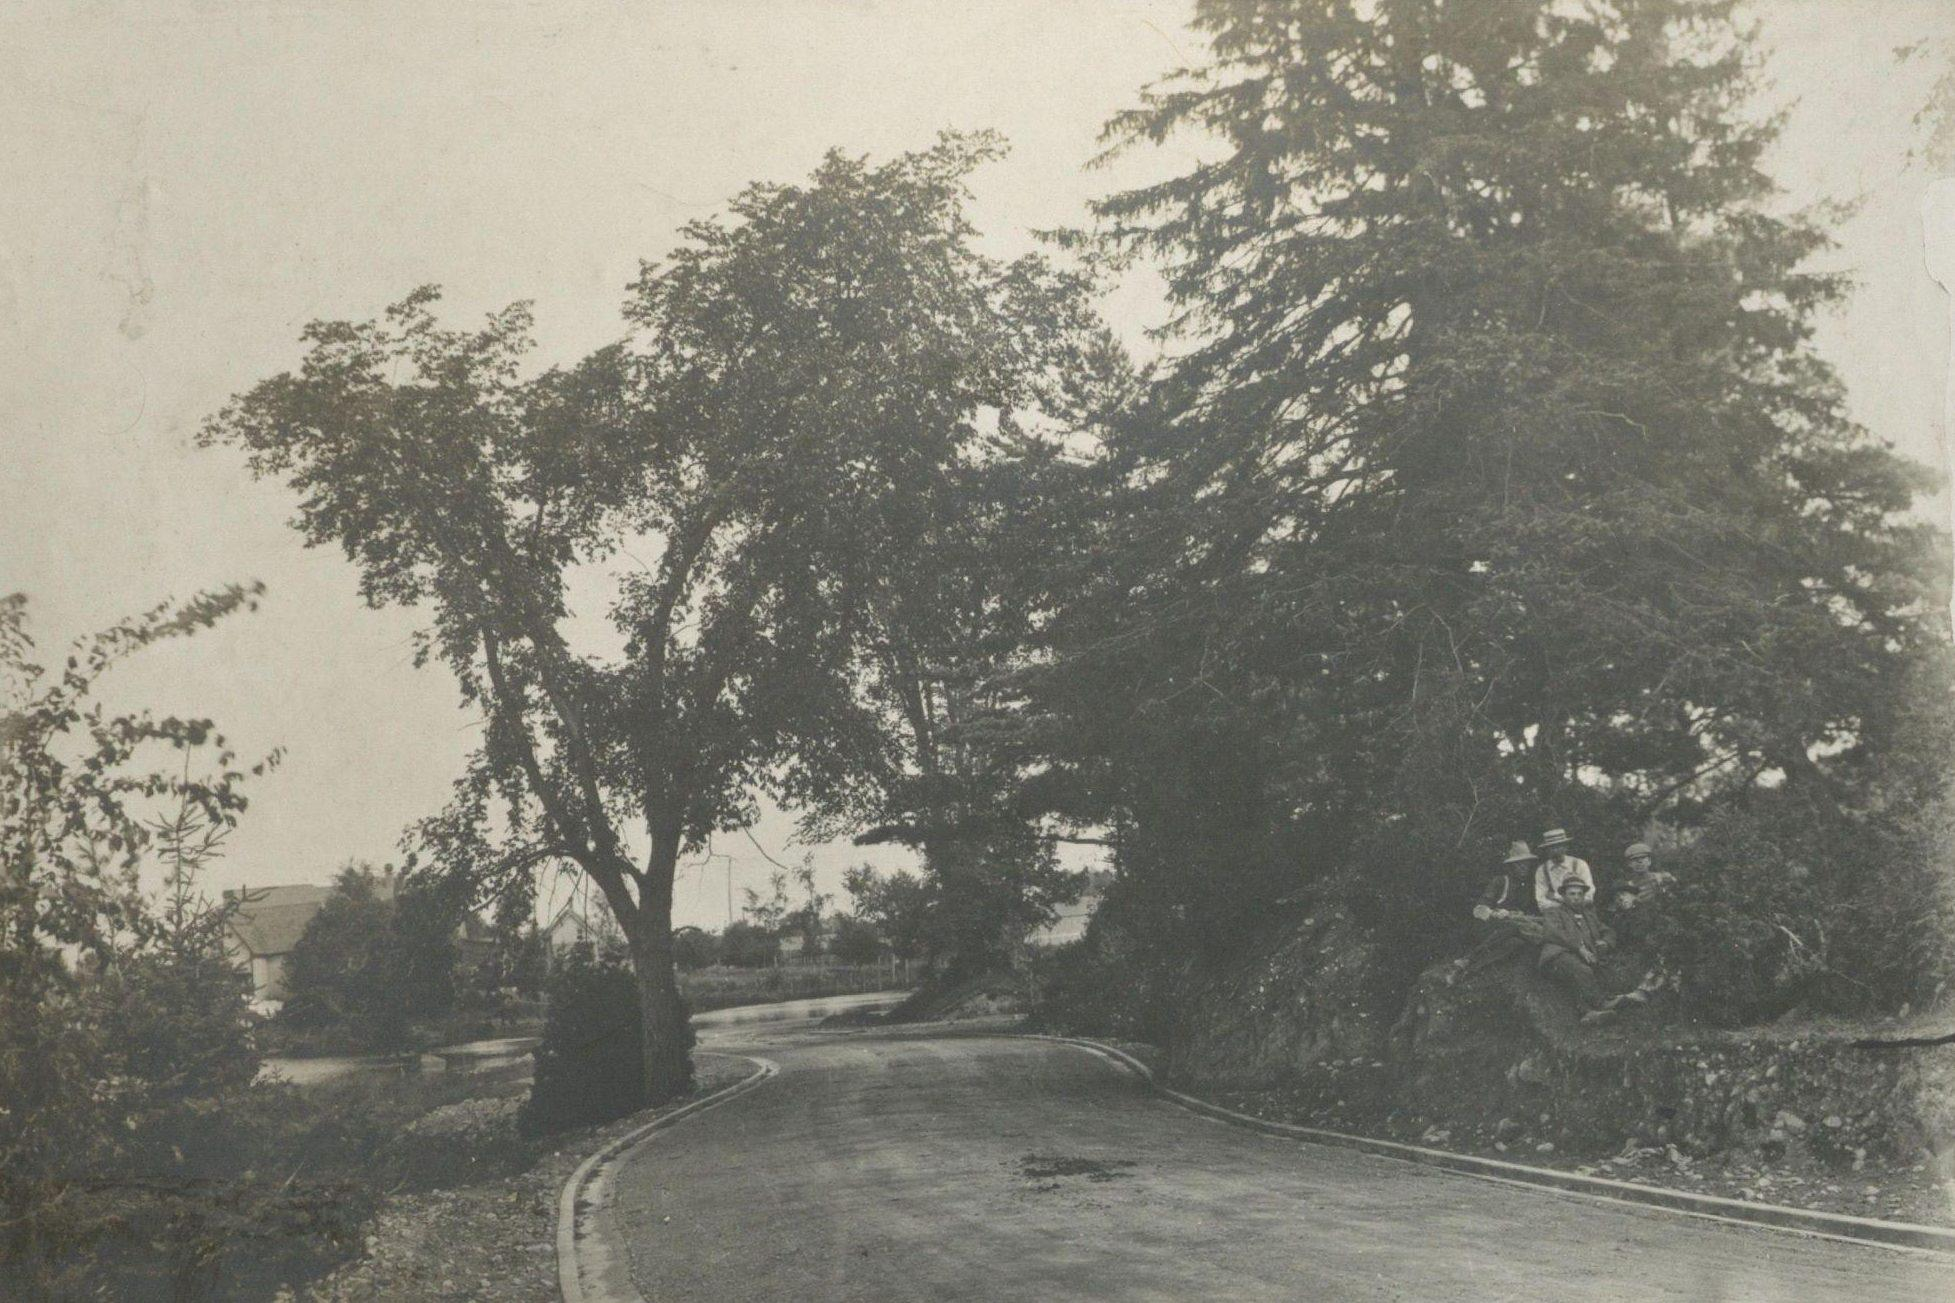 View of the Rideau Canal Driveway, winding through trees, west of Bank Street. 1902. Credit: Library and Archives Canada / E999912077